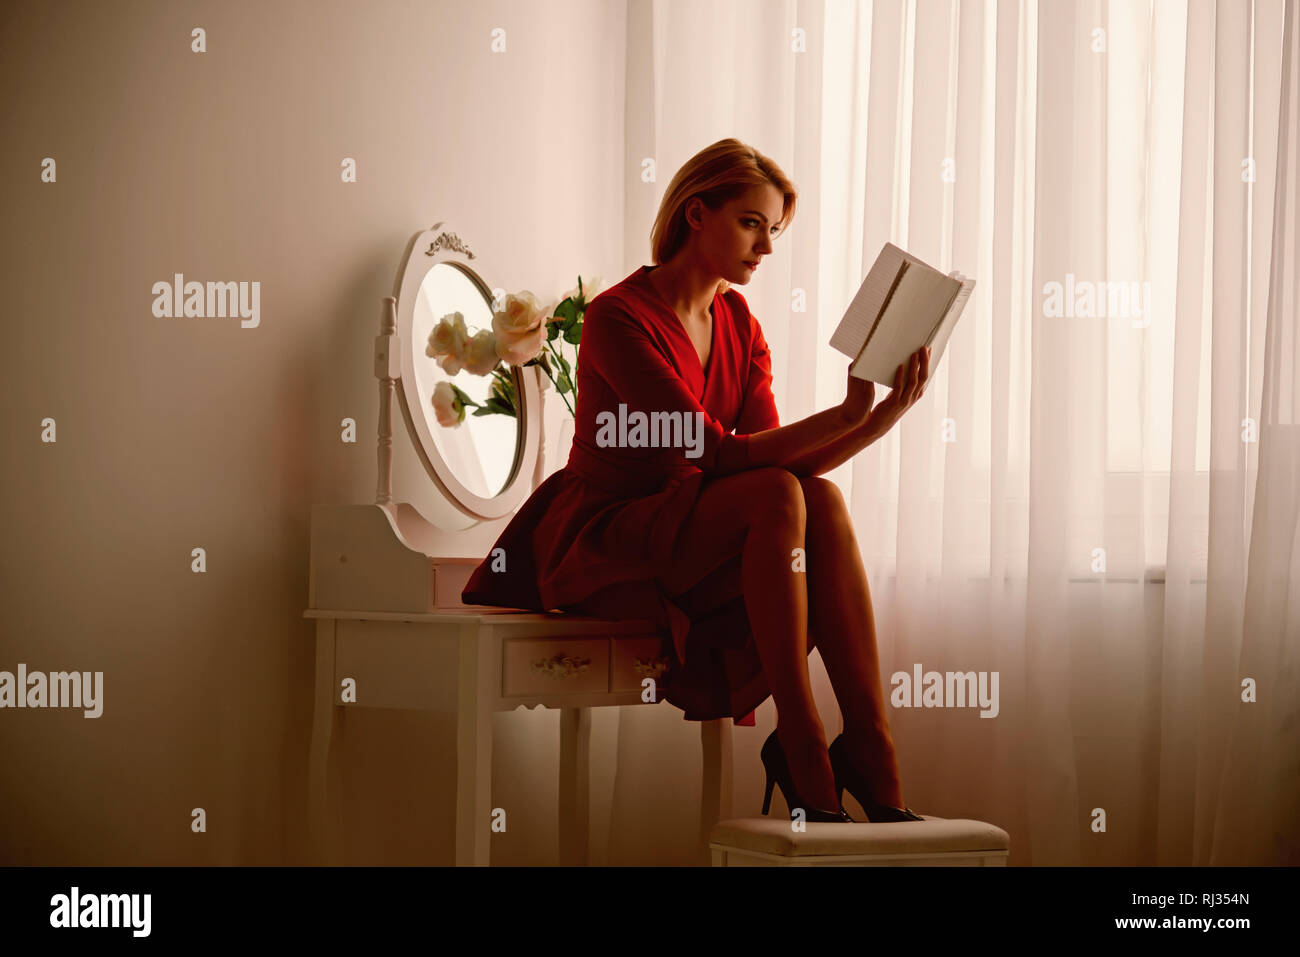 story reading. woman reading story in bedroom. story reading after working day. woman reading book. great story - Stock Image